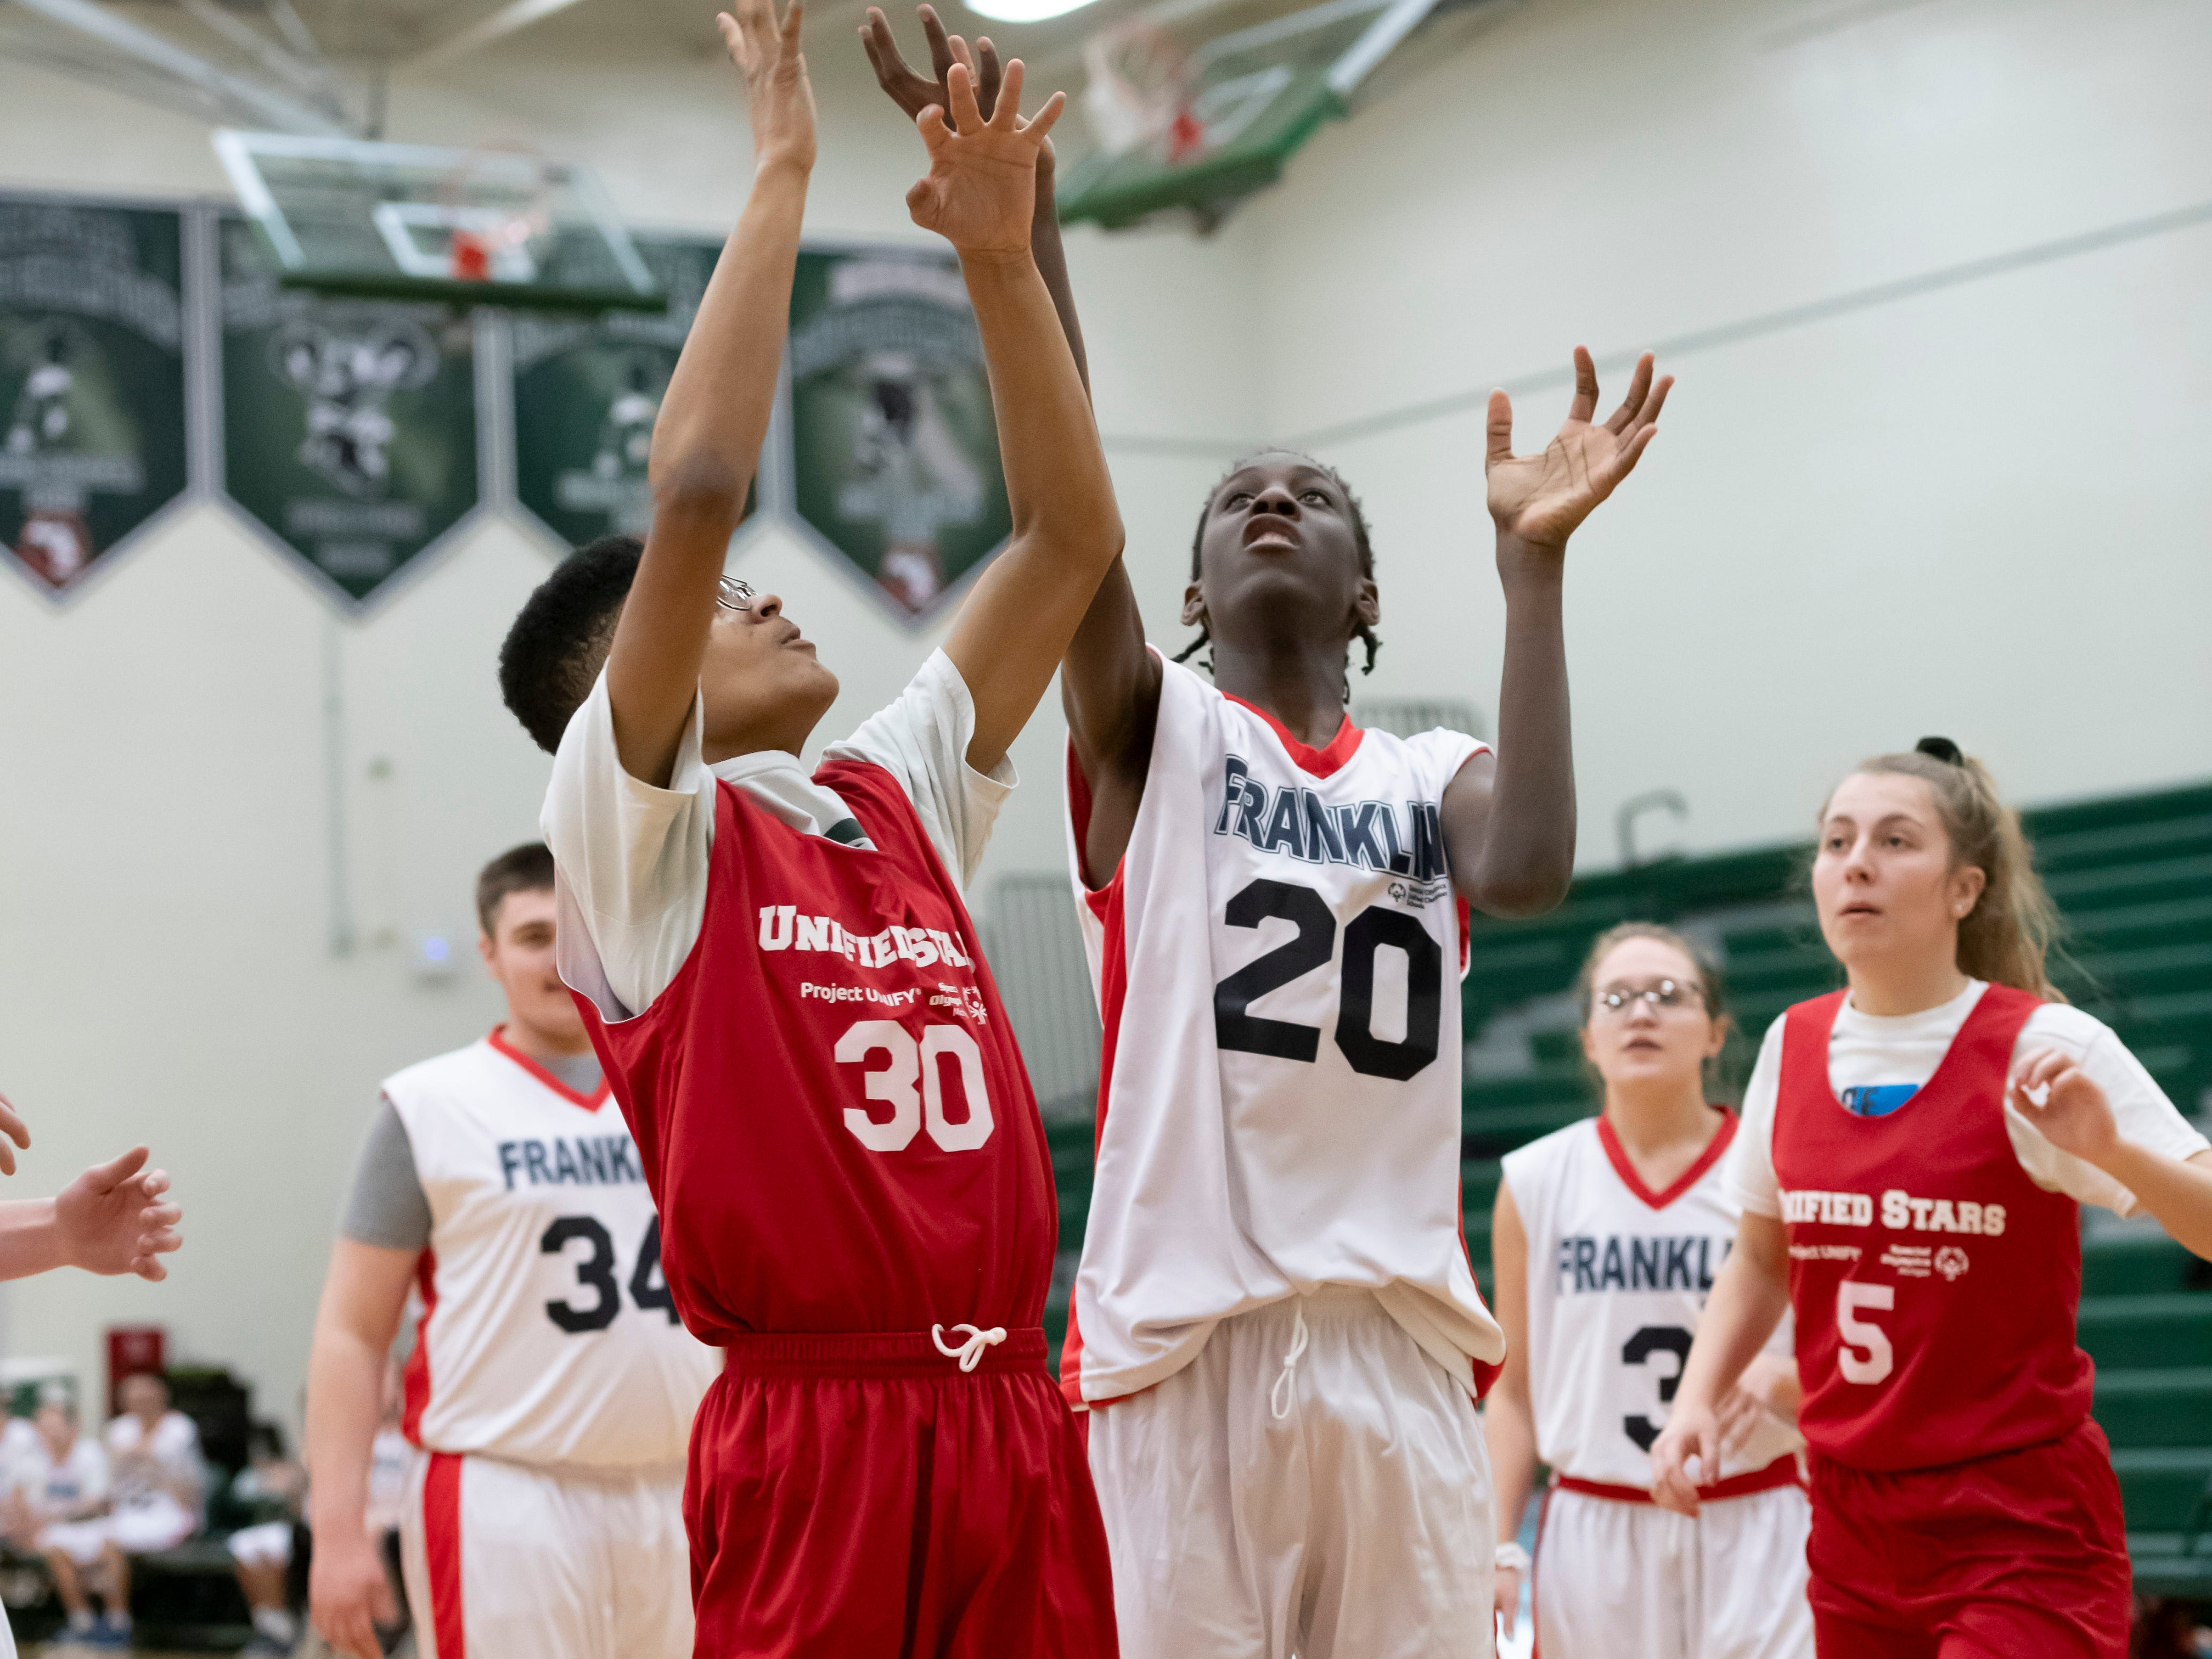 Plymouth Canton's Kamren Martin, left, and Franklin Unified's D.J. Rickett battle for the ball during the Kensington Lakes Athletic Association Unified basketball tournament at Novi high school.